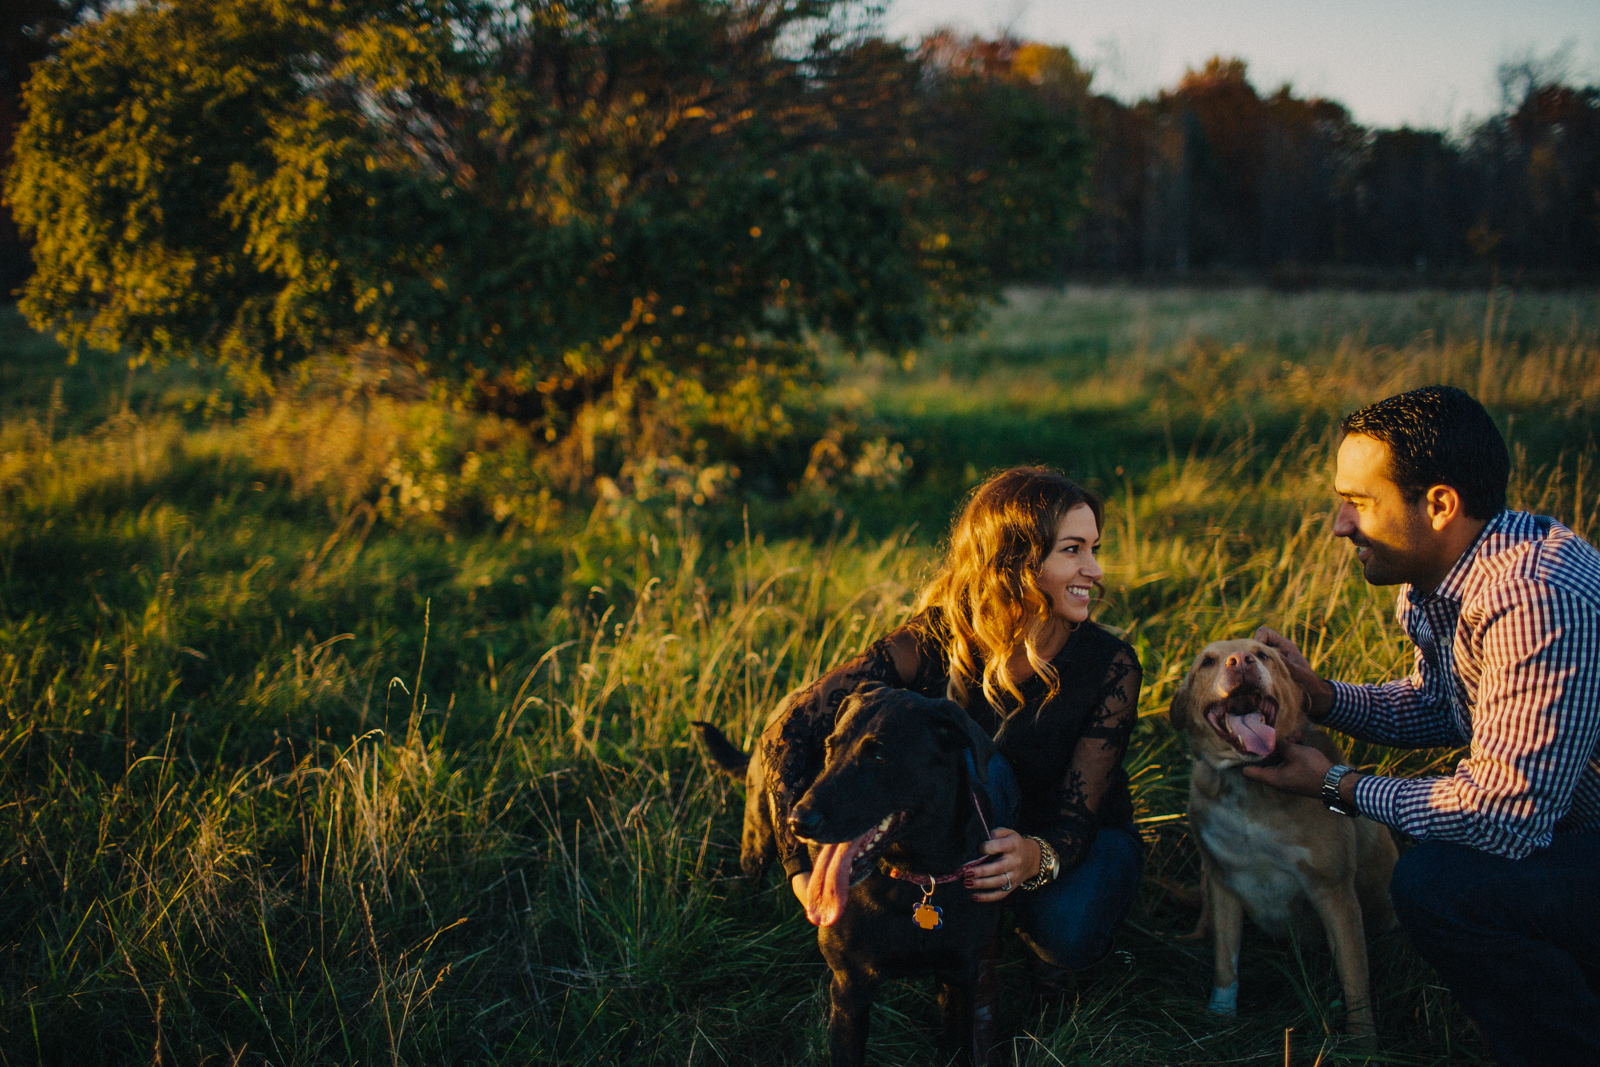 matea state park indiana fort wayne engagement session sarah cusson photography-41.jpg